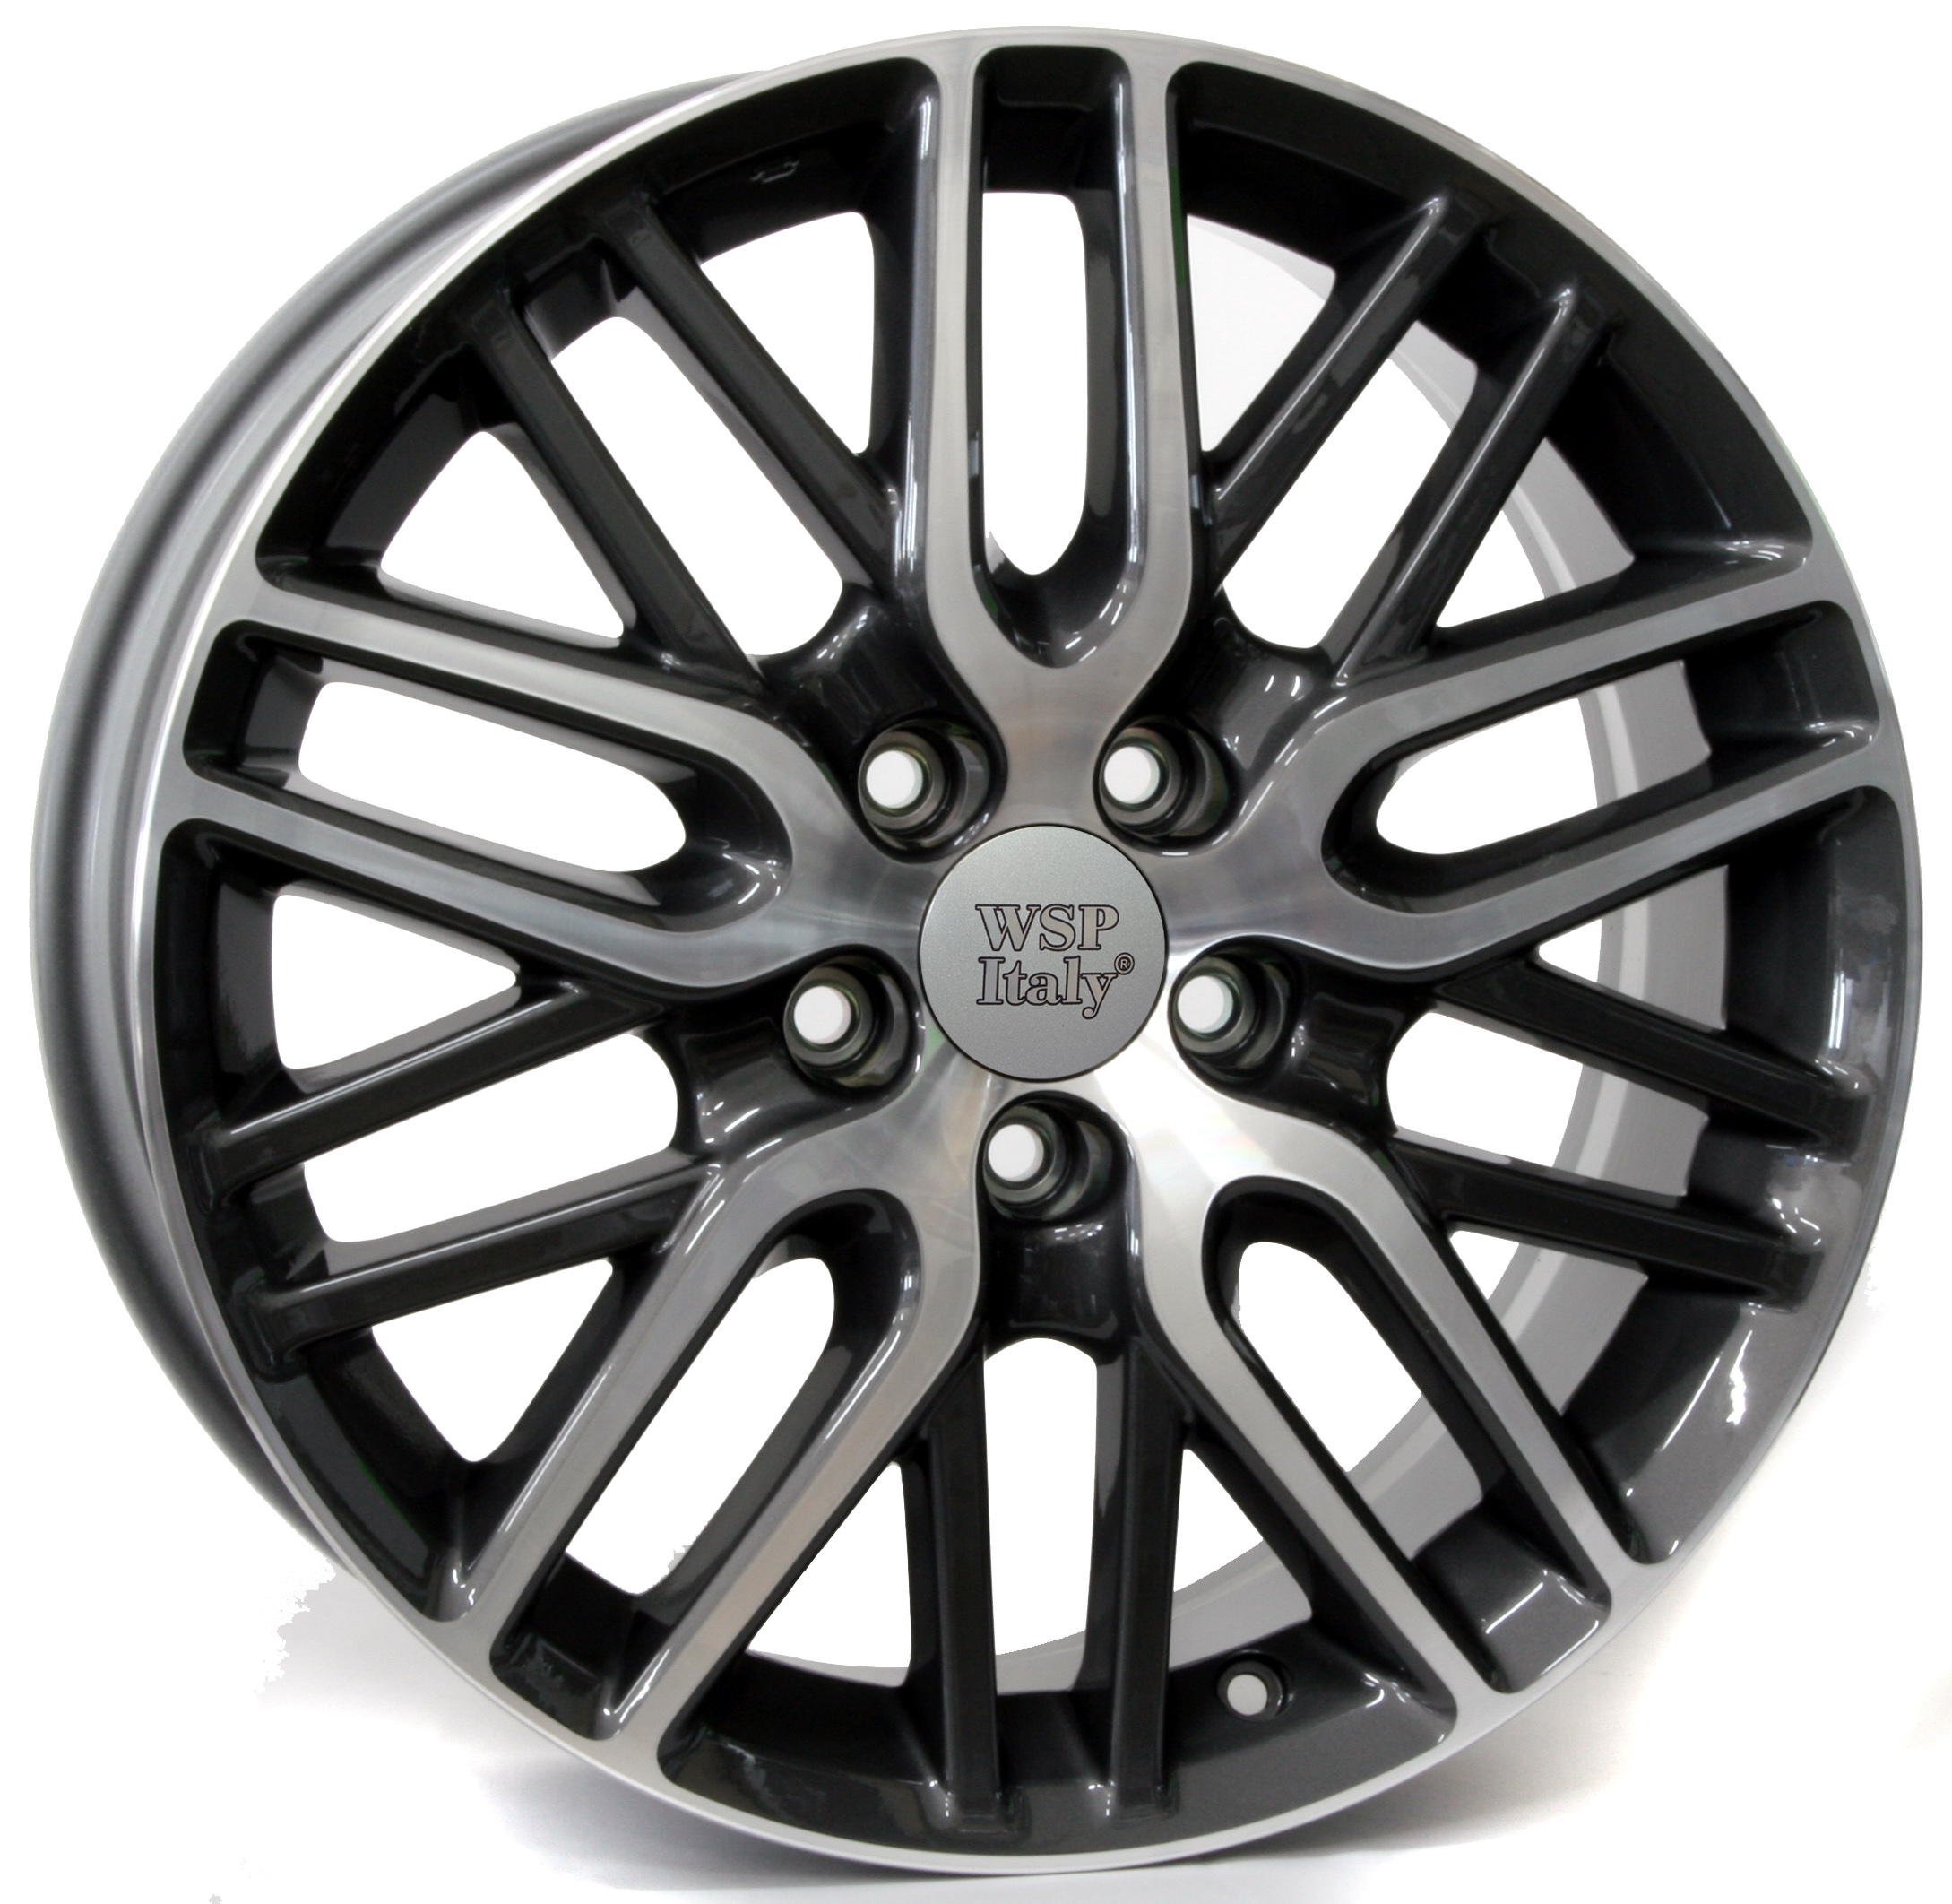 WSP Italy IMPERIA W2408 7x17/5X114.3 D64.1 ET55 ANTHRACITE POLISHED